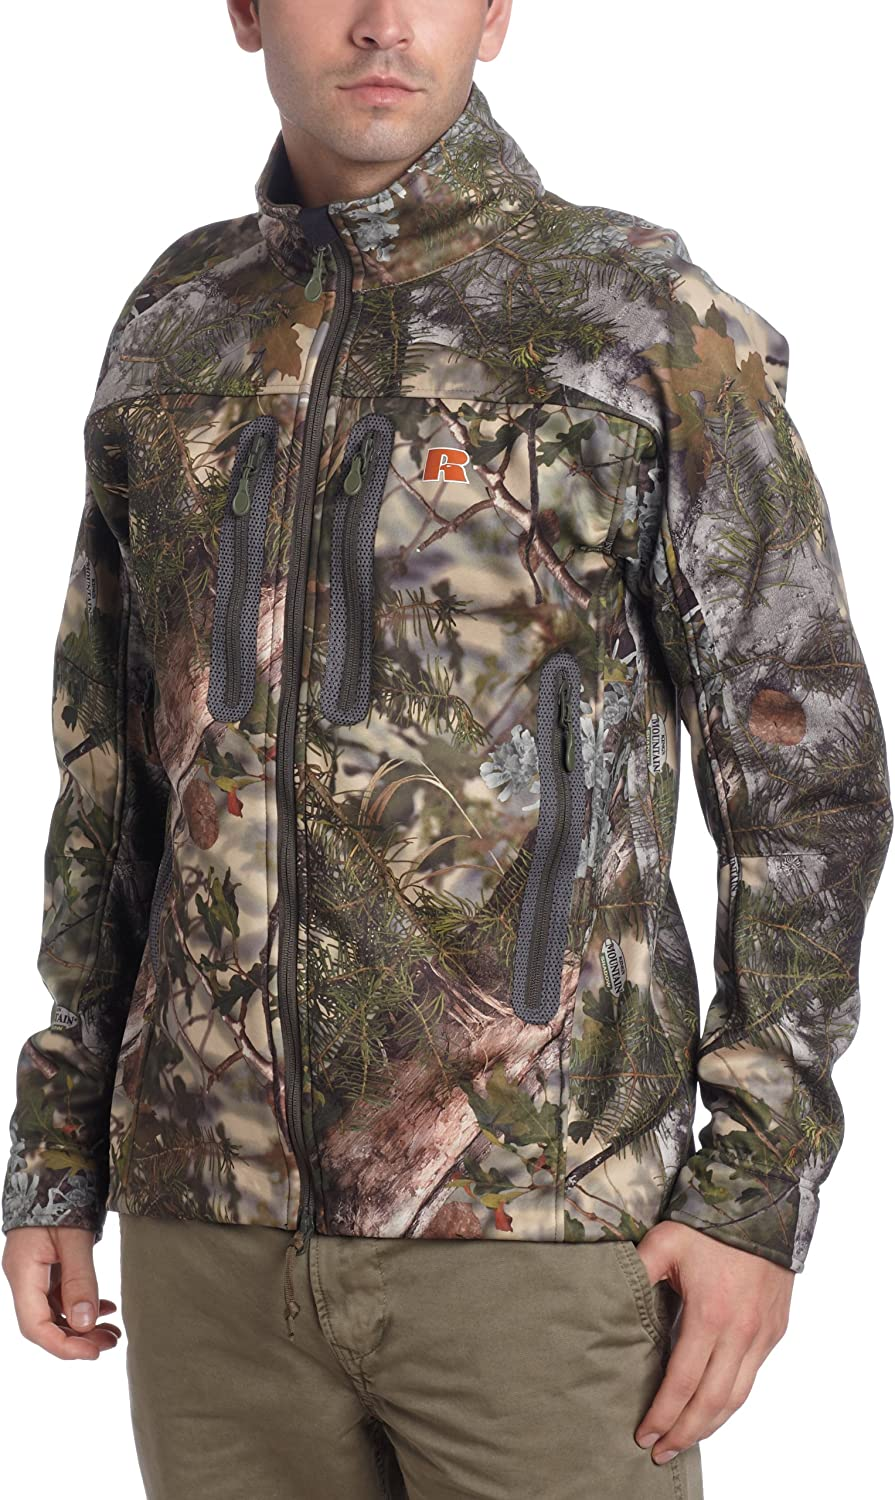 Russell Outdoors At Max 58% OFF the price of surprise Men's